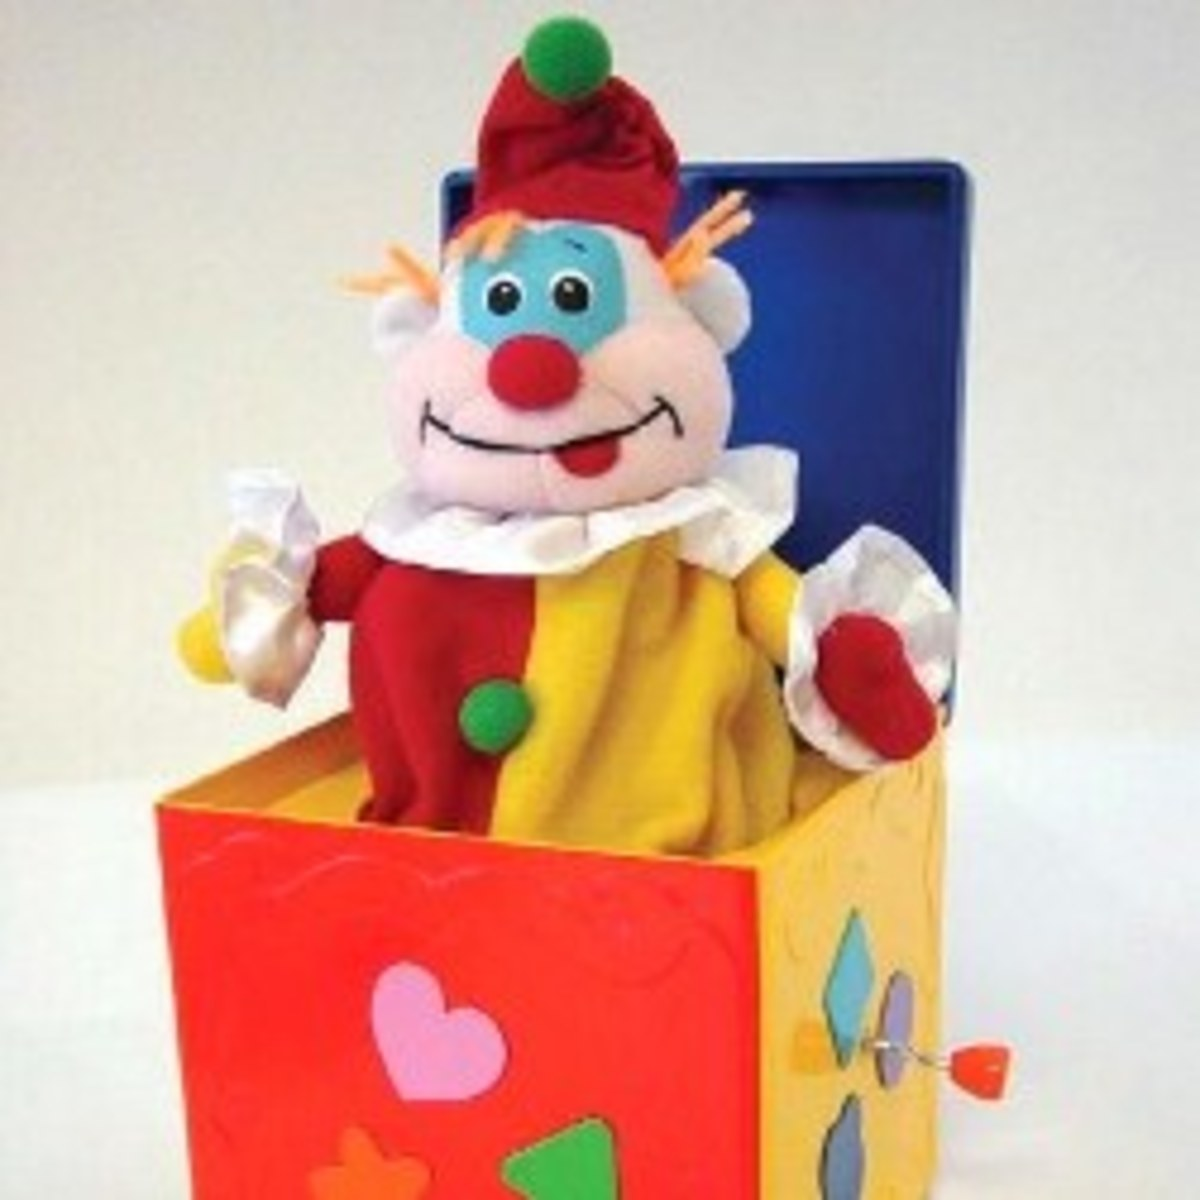 Jack-in-the_box Toy